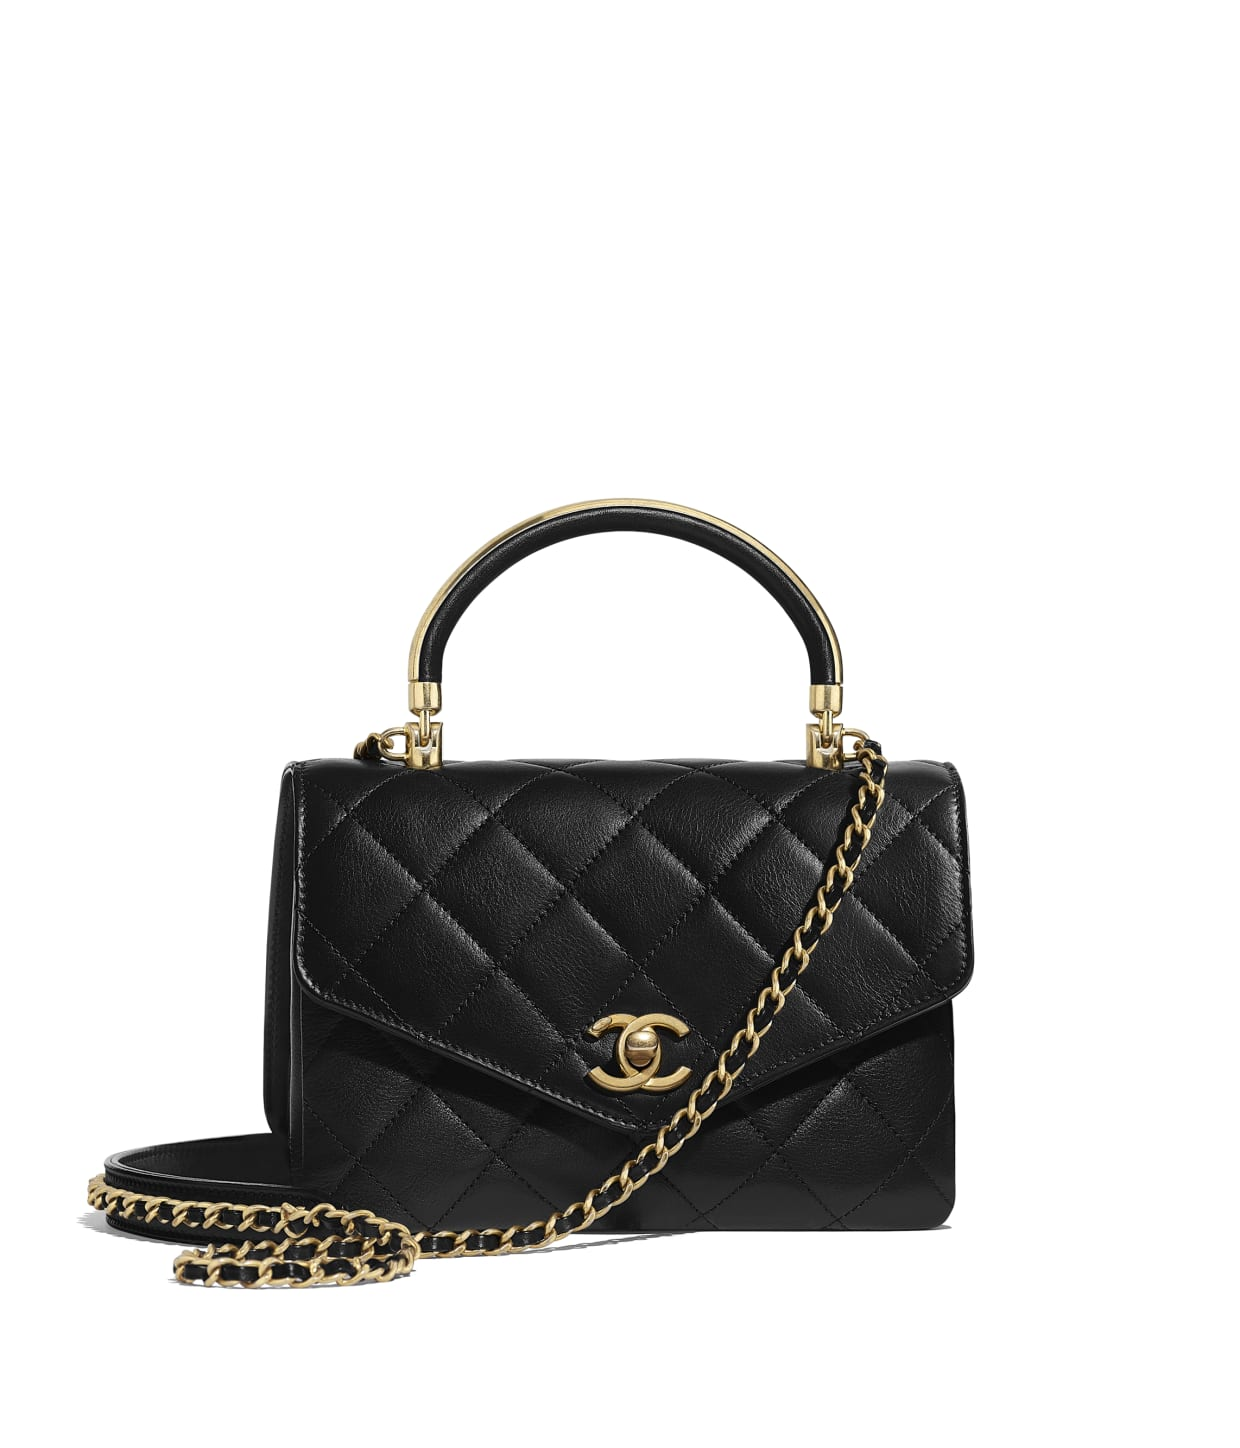 Calfskin Amp Gold Tone Metal Black Small Flap Bag With Top